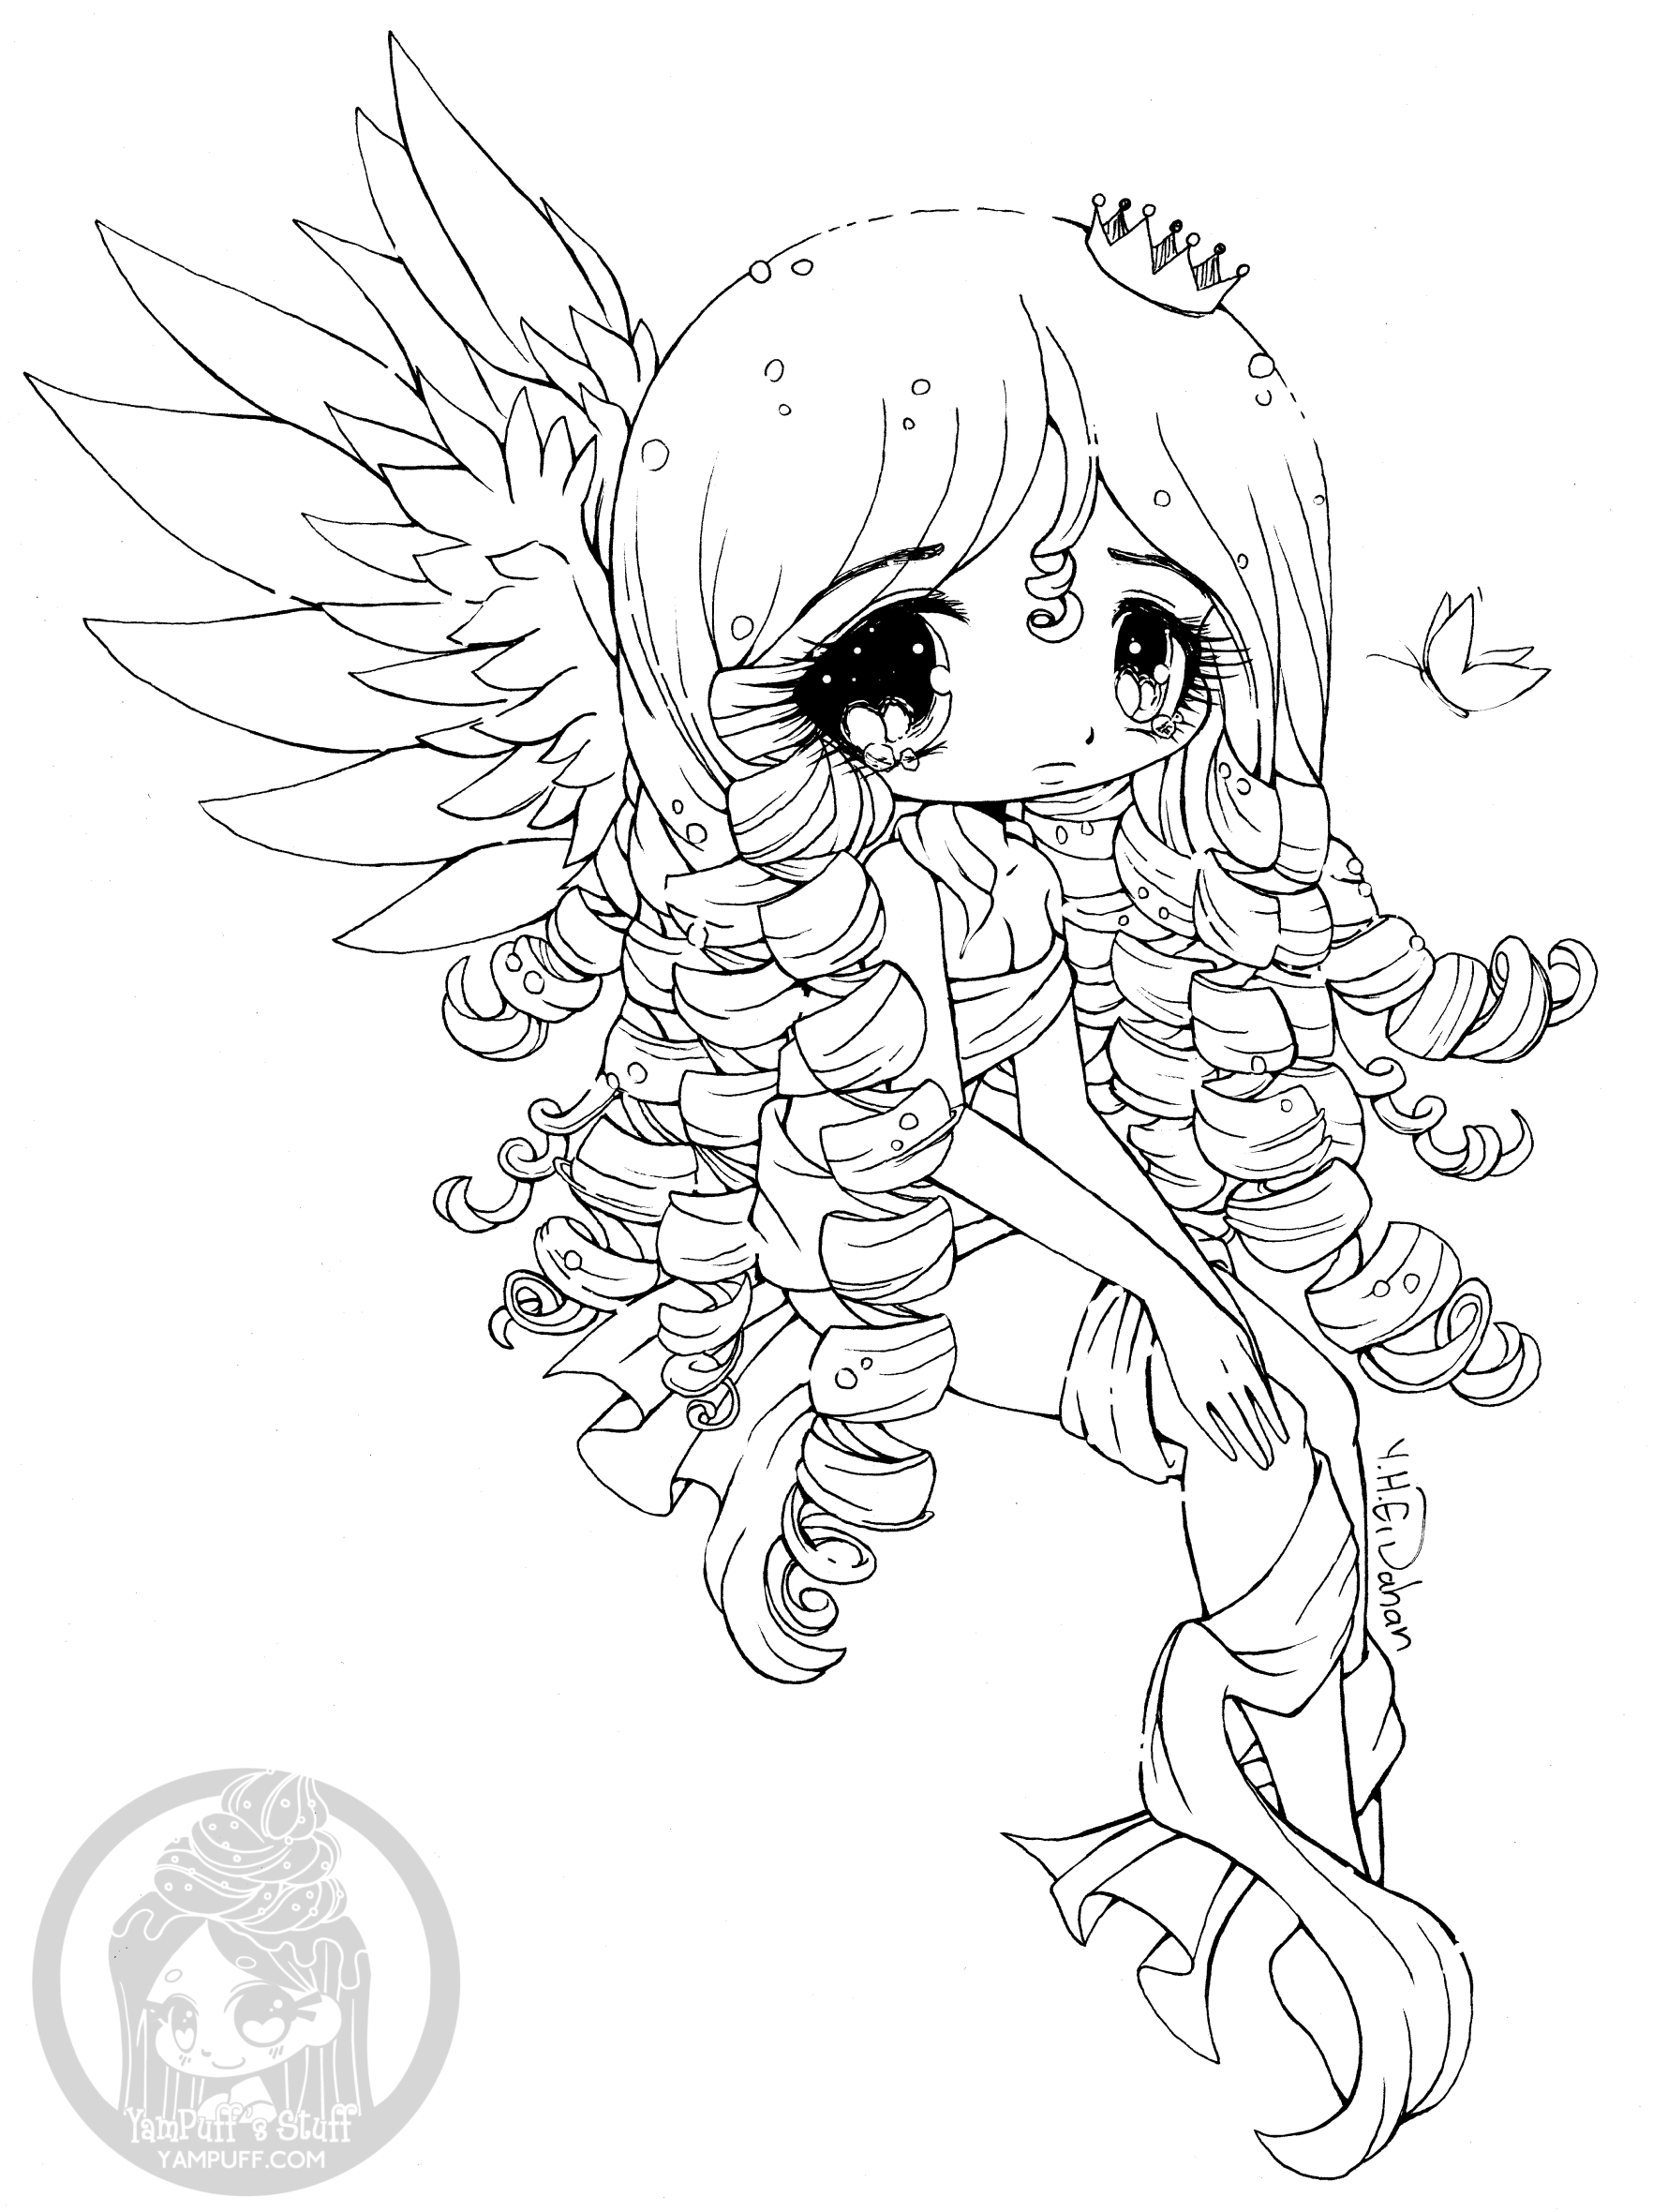 cute chibi girl coloring pages fanart free chibi colouring pages yampuff39s stuff girl chibi coloring pages cute